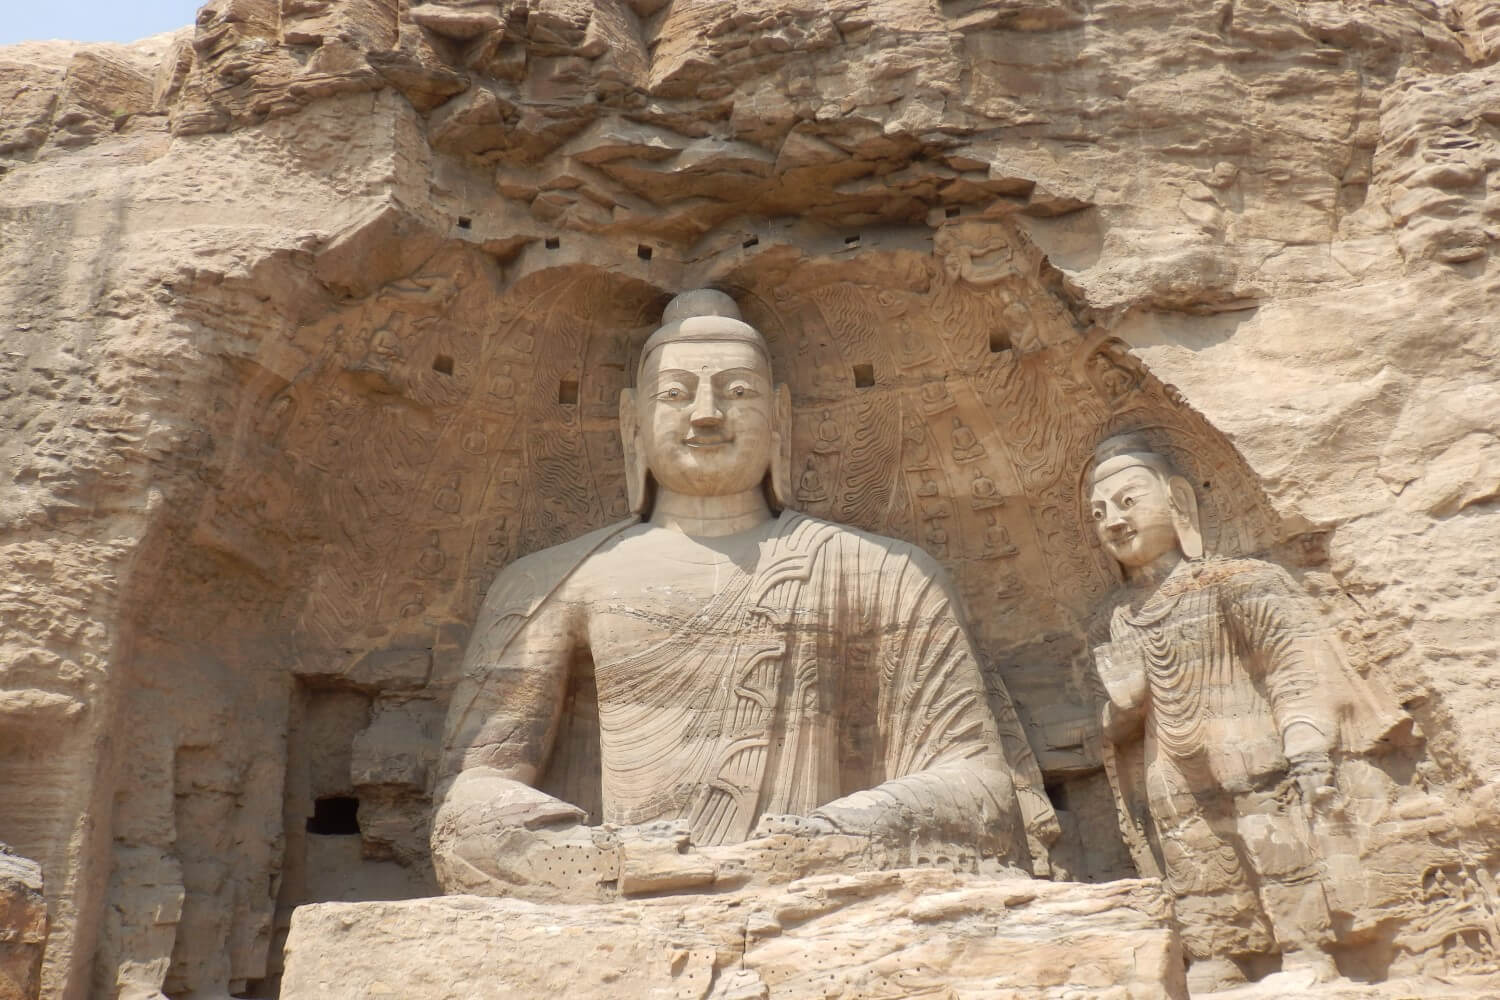 The famous Caves of Yungang in China